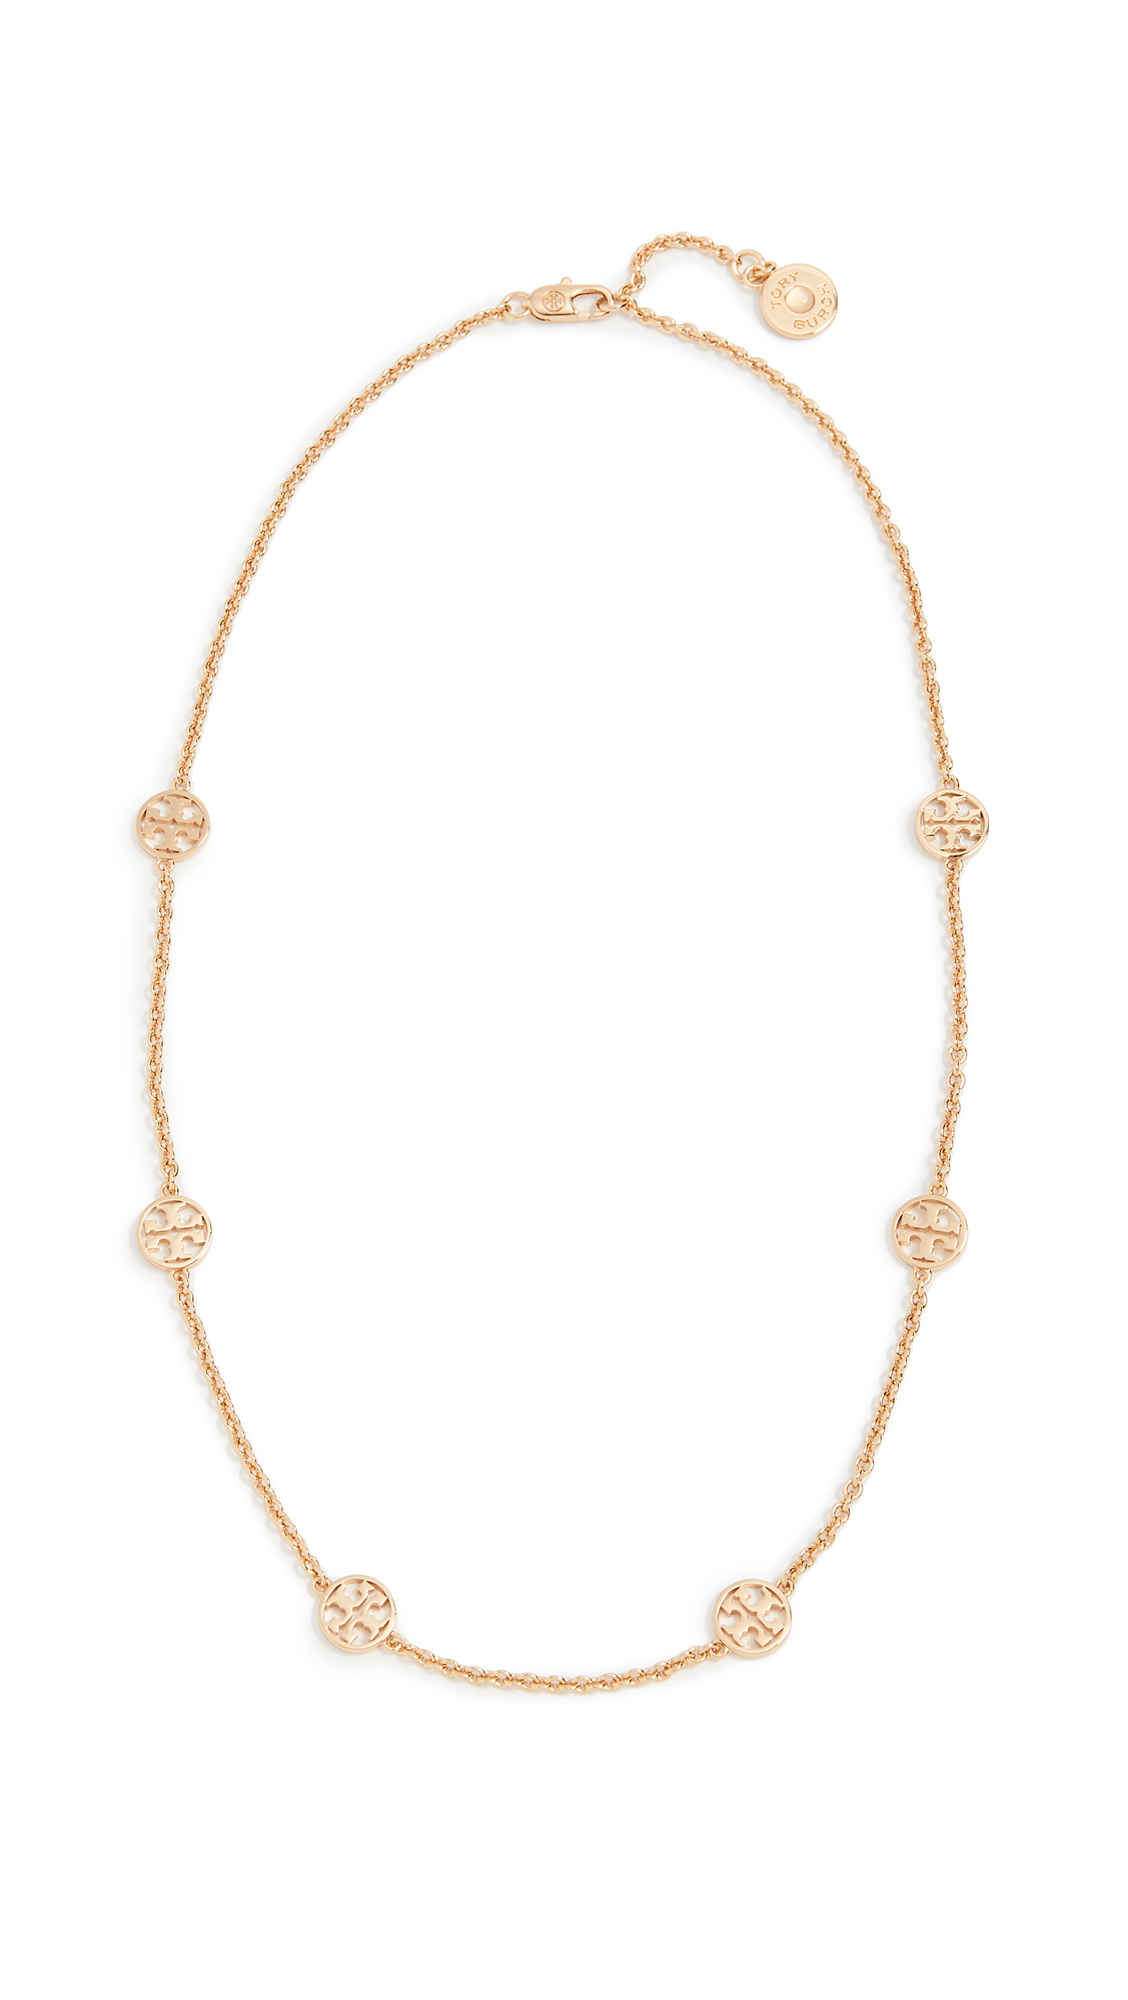 Tory Burch Delicate Logo Necklace - Tory Gold